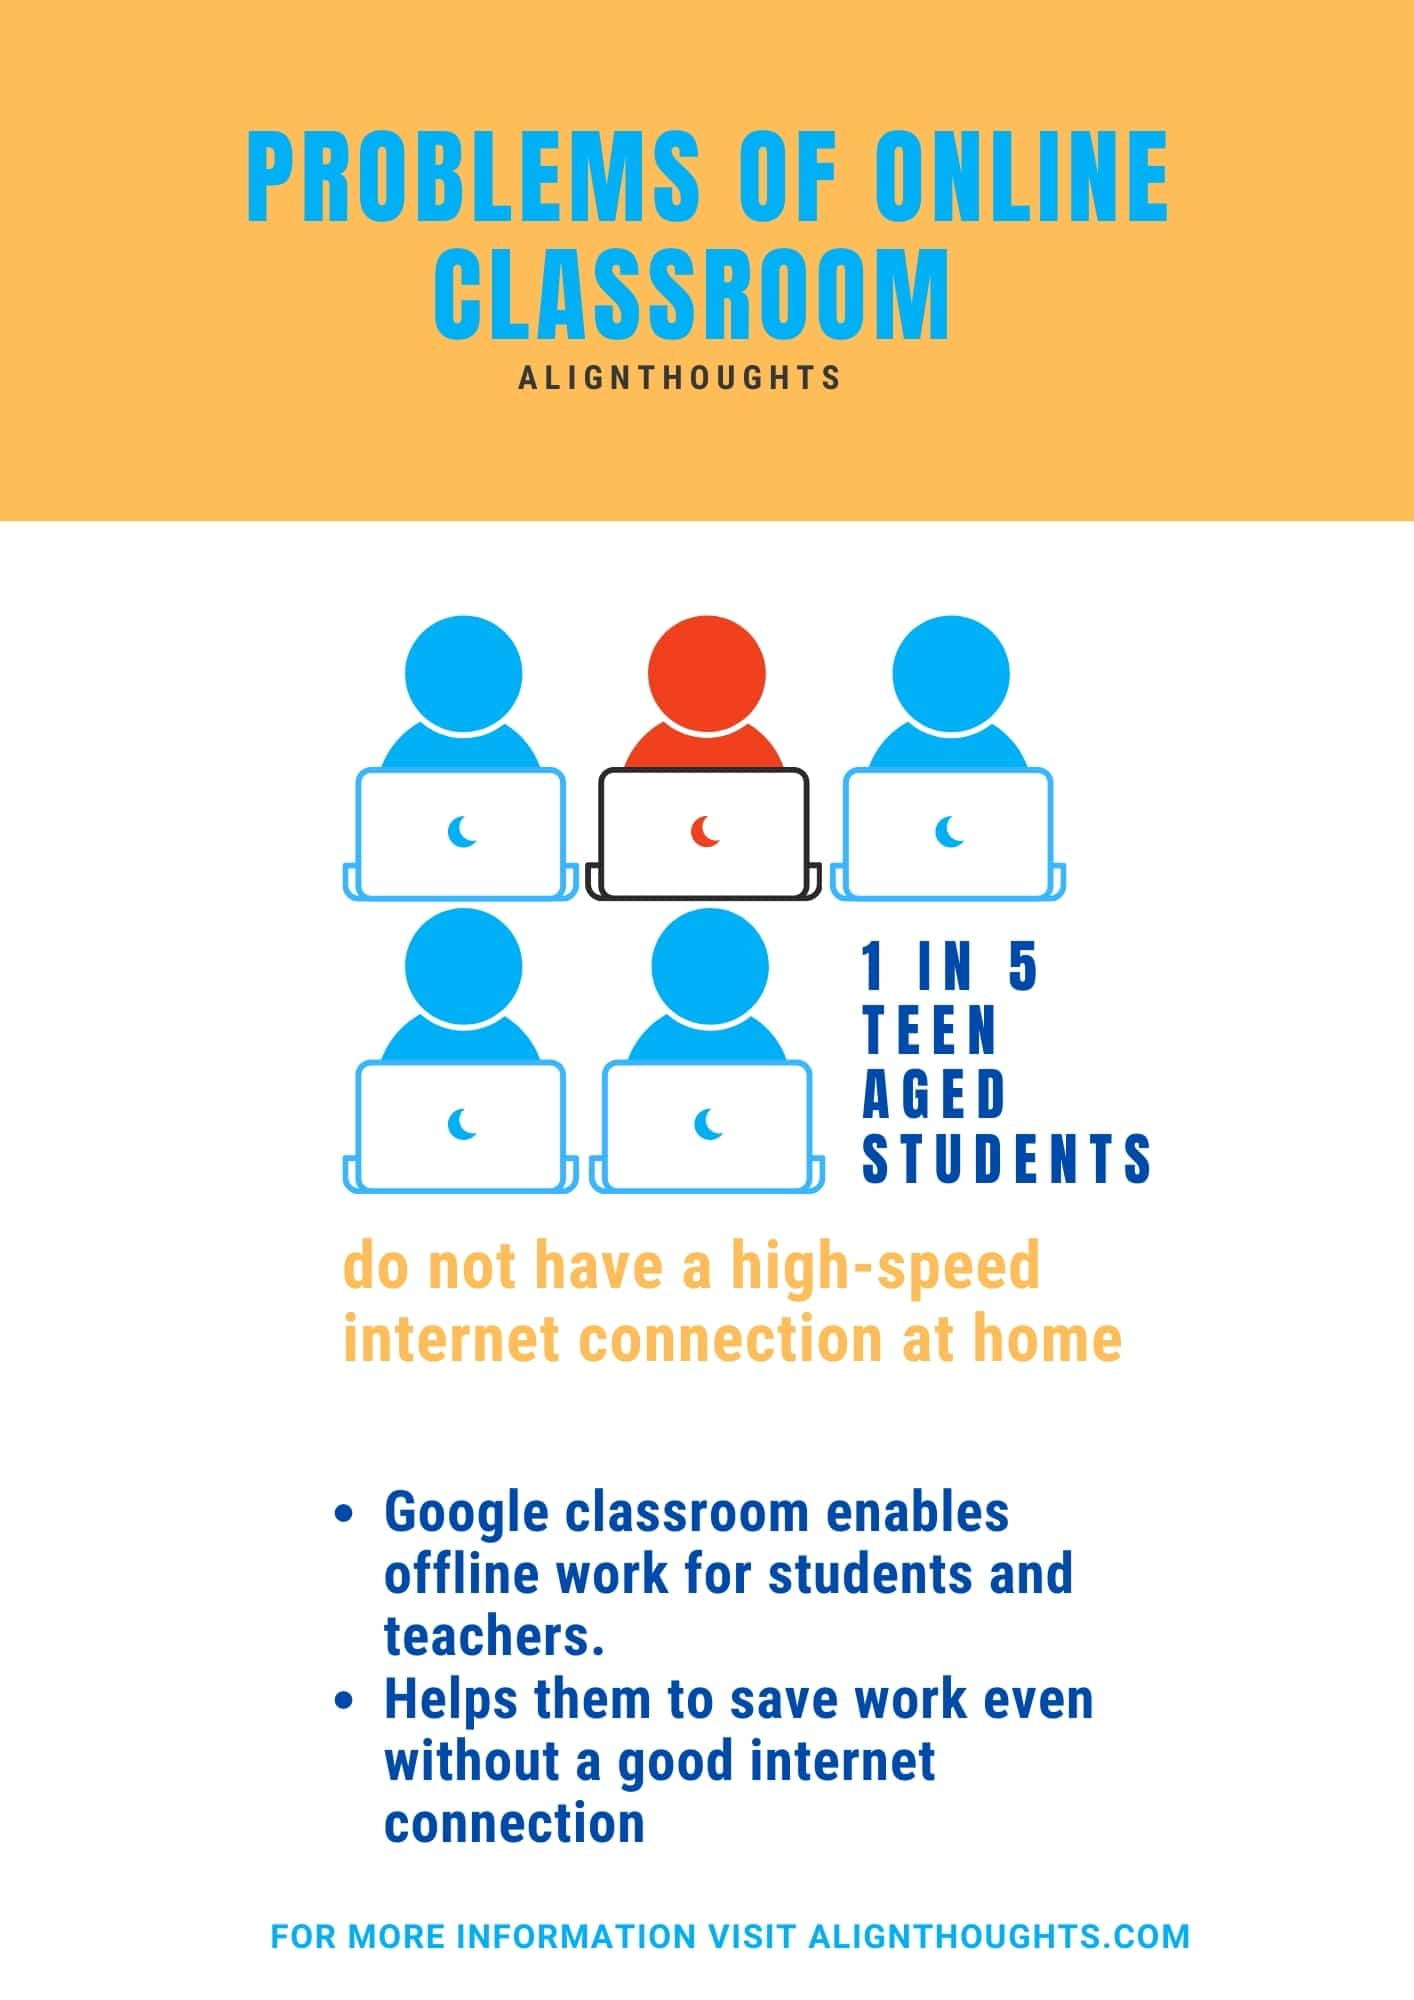 benefits of Google classroom-alignthoughts